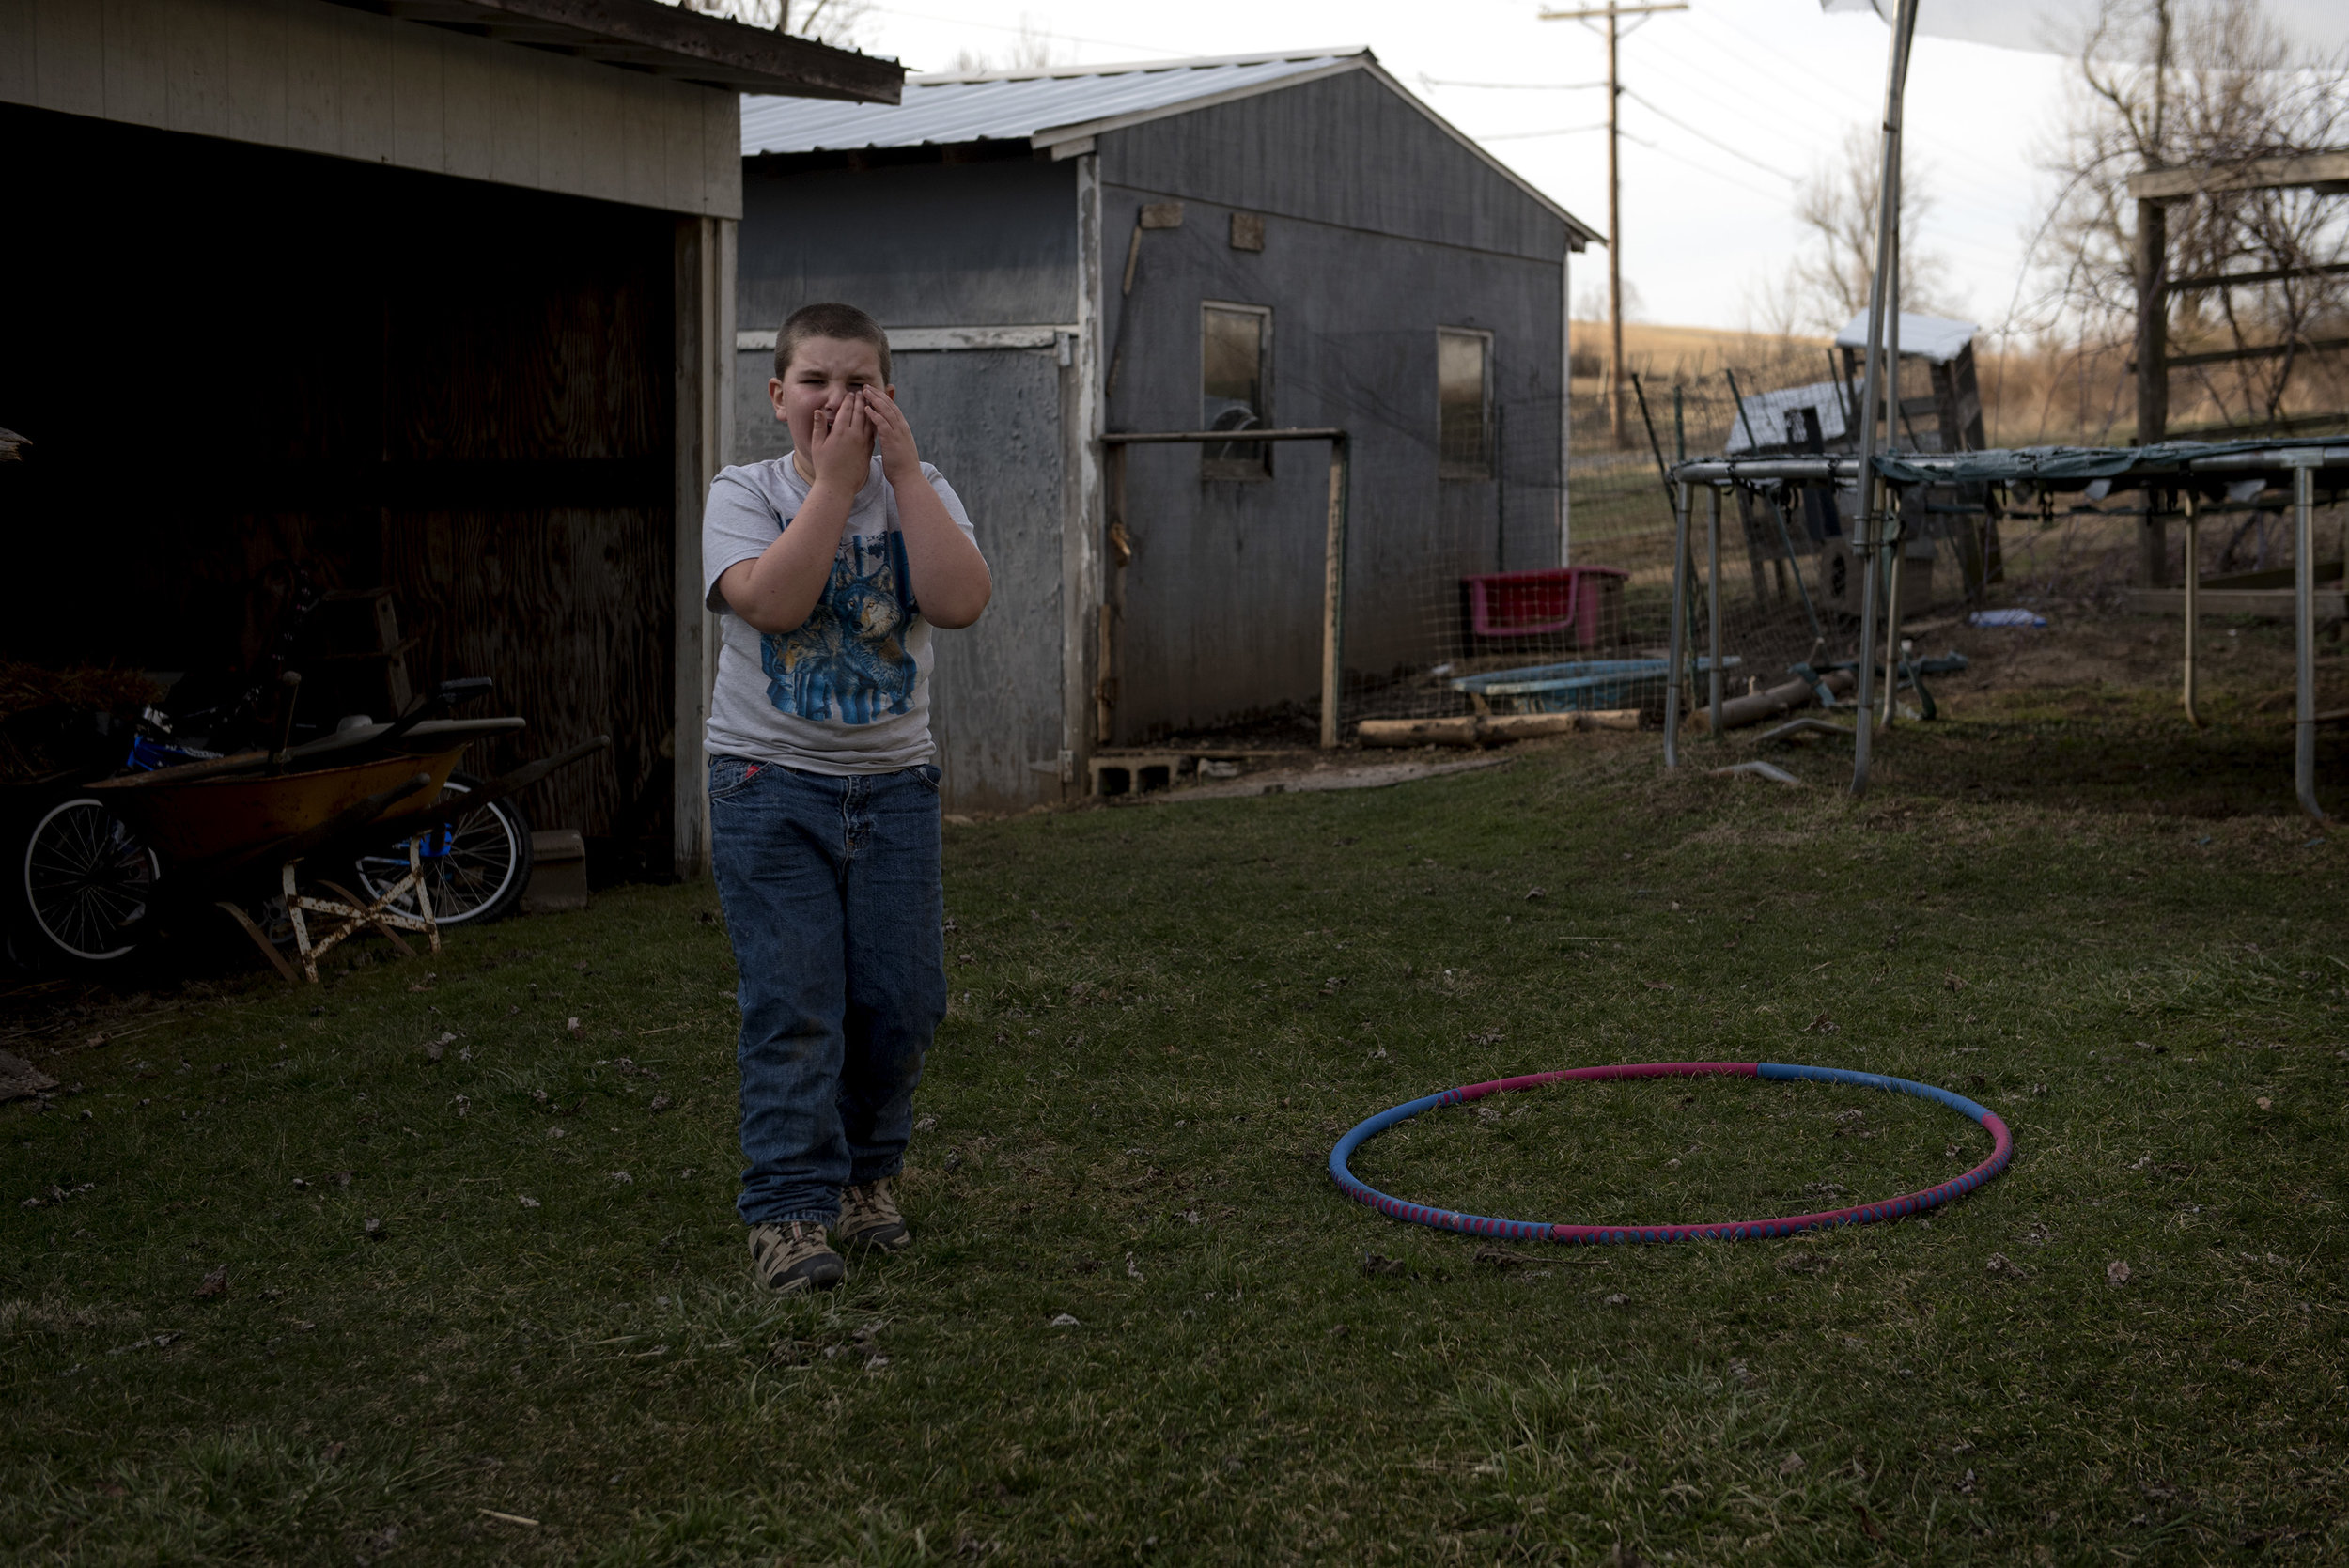 "Nathan Trout holds his face in tears after his cousin once-removed kicked the hula hoop up at his face on accident. ""You know how some boys are real tough? Nathan's not one of them,"" said his mother. Masculinity is often defined by the a sense of hard-working, tough, nose-to-the grindstone work ethic. Being able to work hard and support yourself and family are held as strong values in manhood."